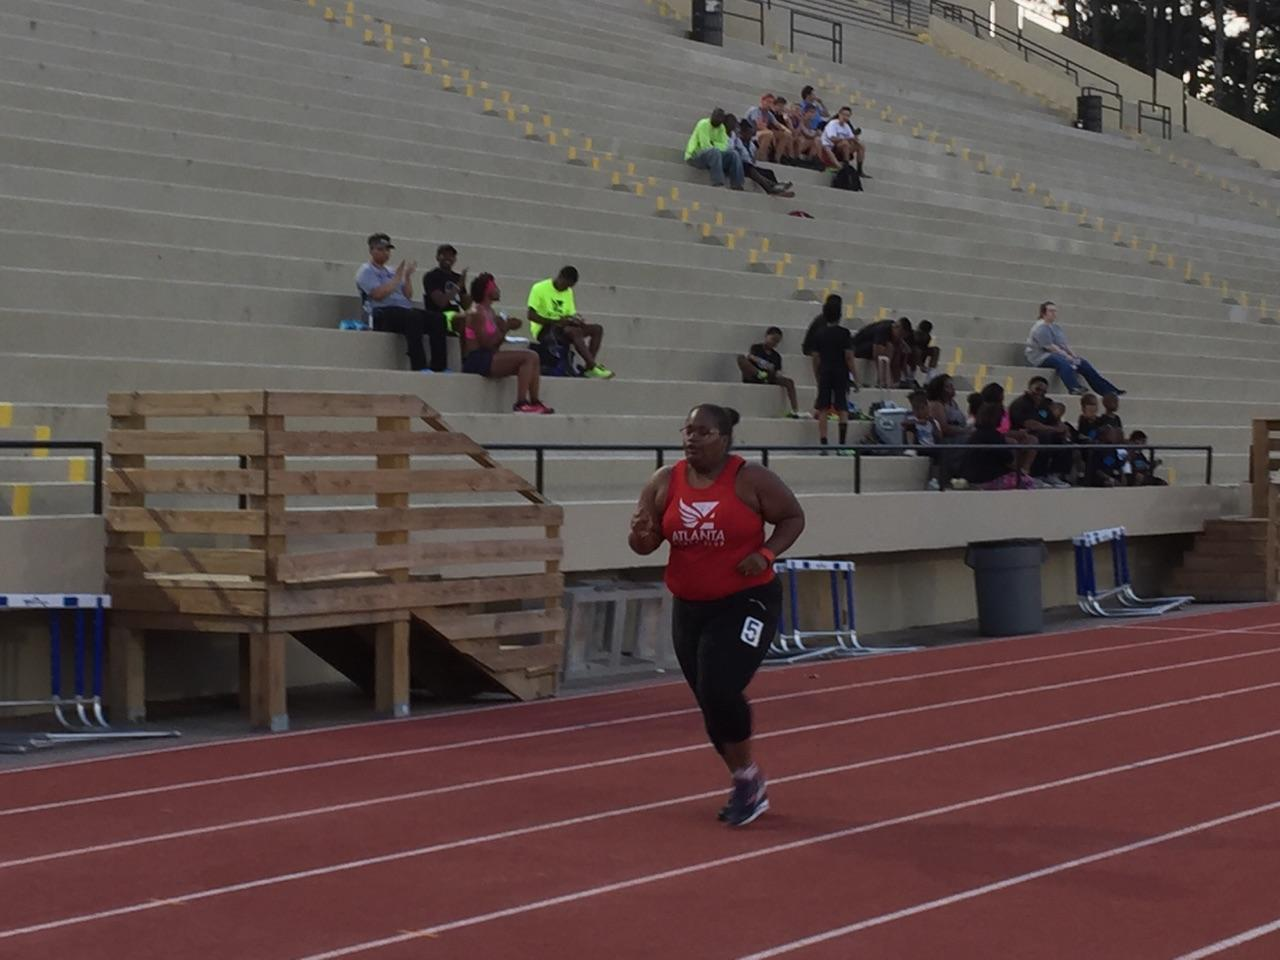 400M finish All Comers Track Meet 2017